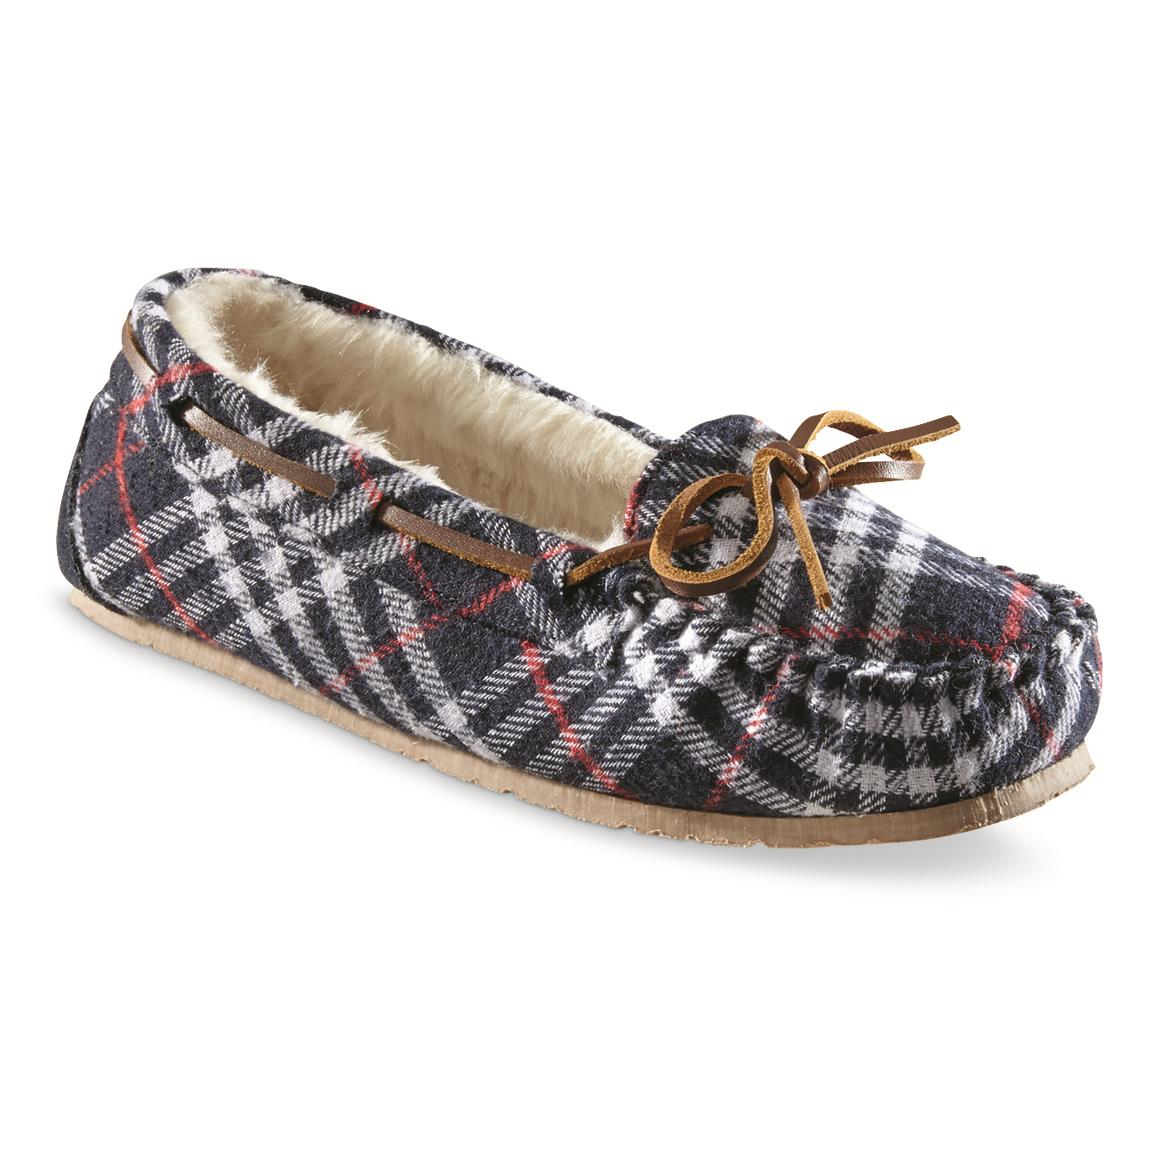 Guide Gear Women's Moccasin Slippers, Navy/white/red Plaid